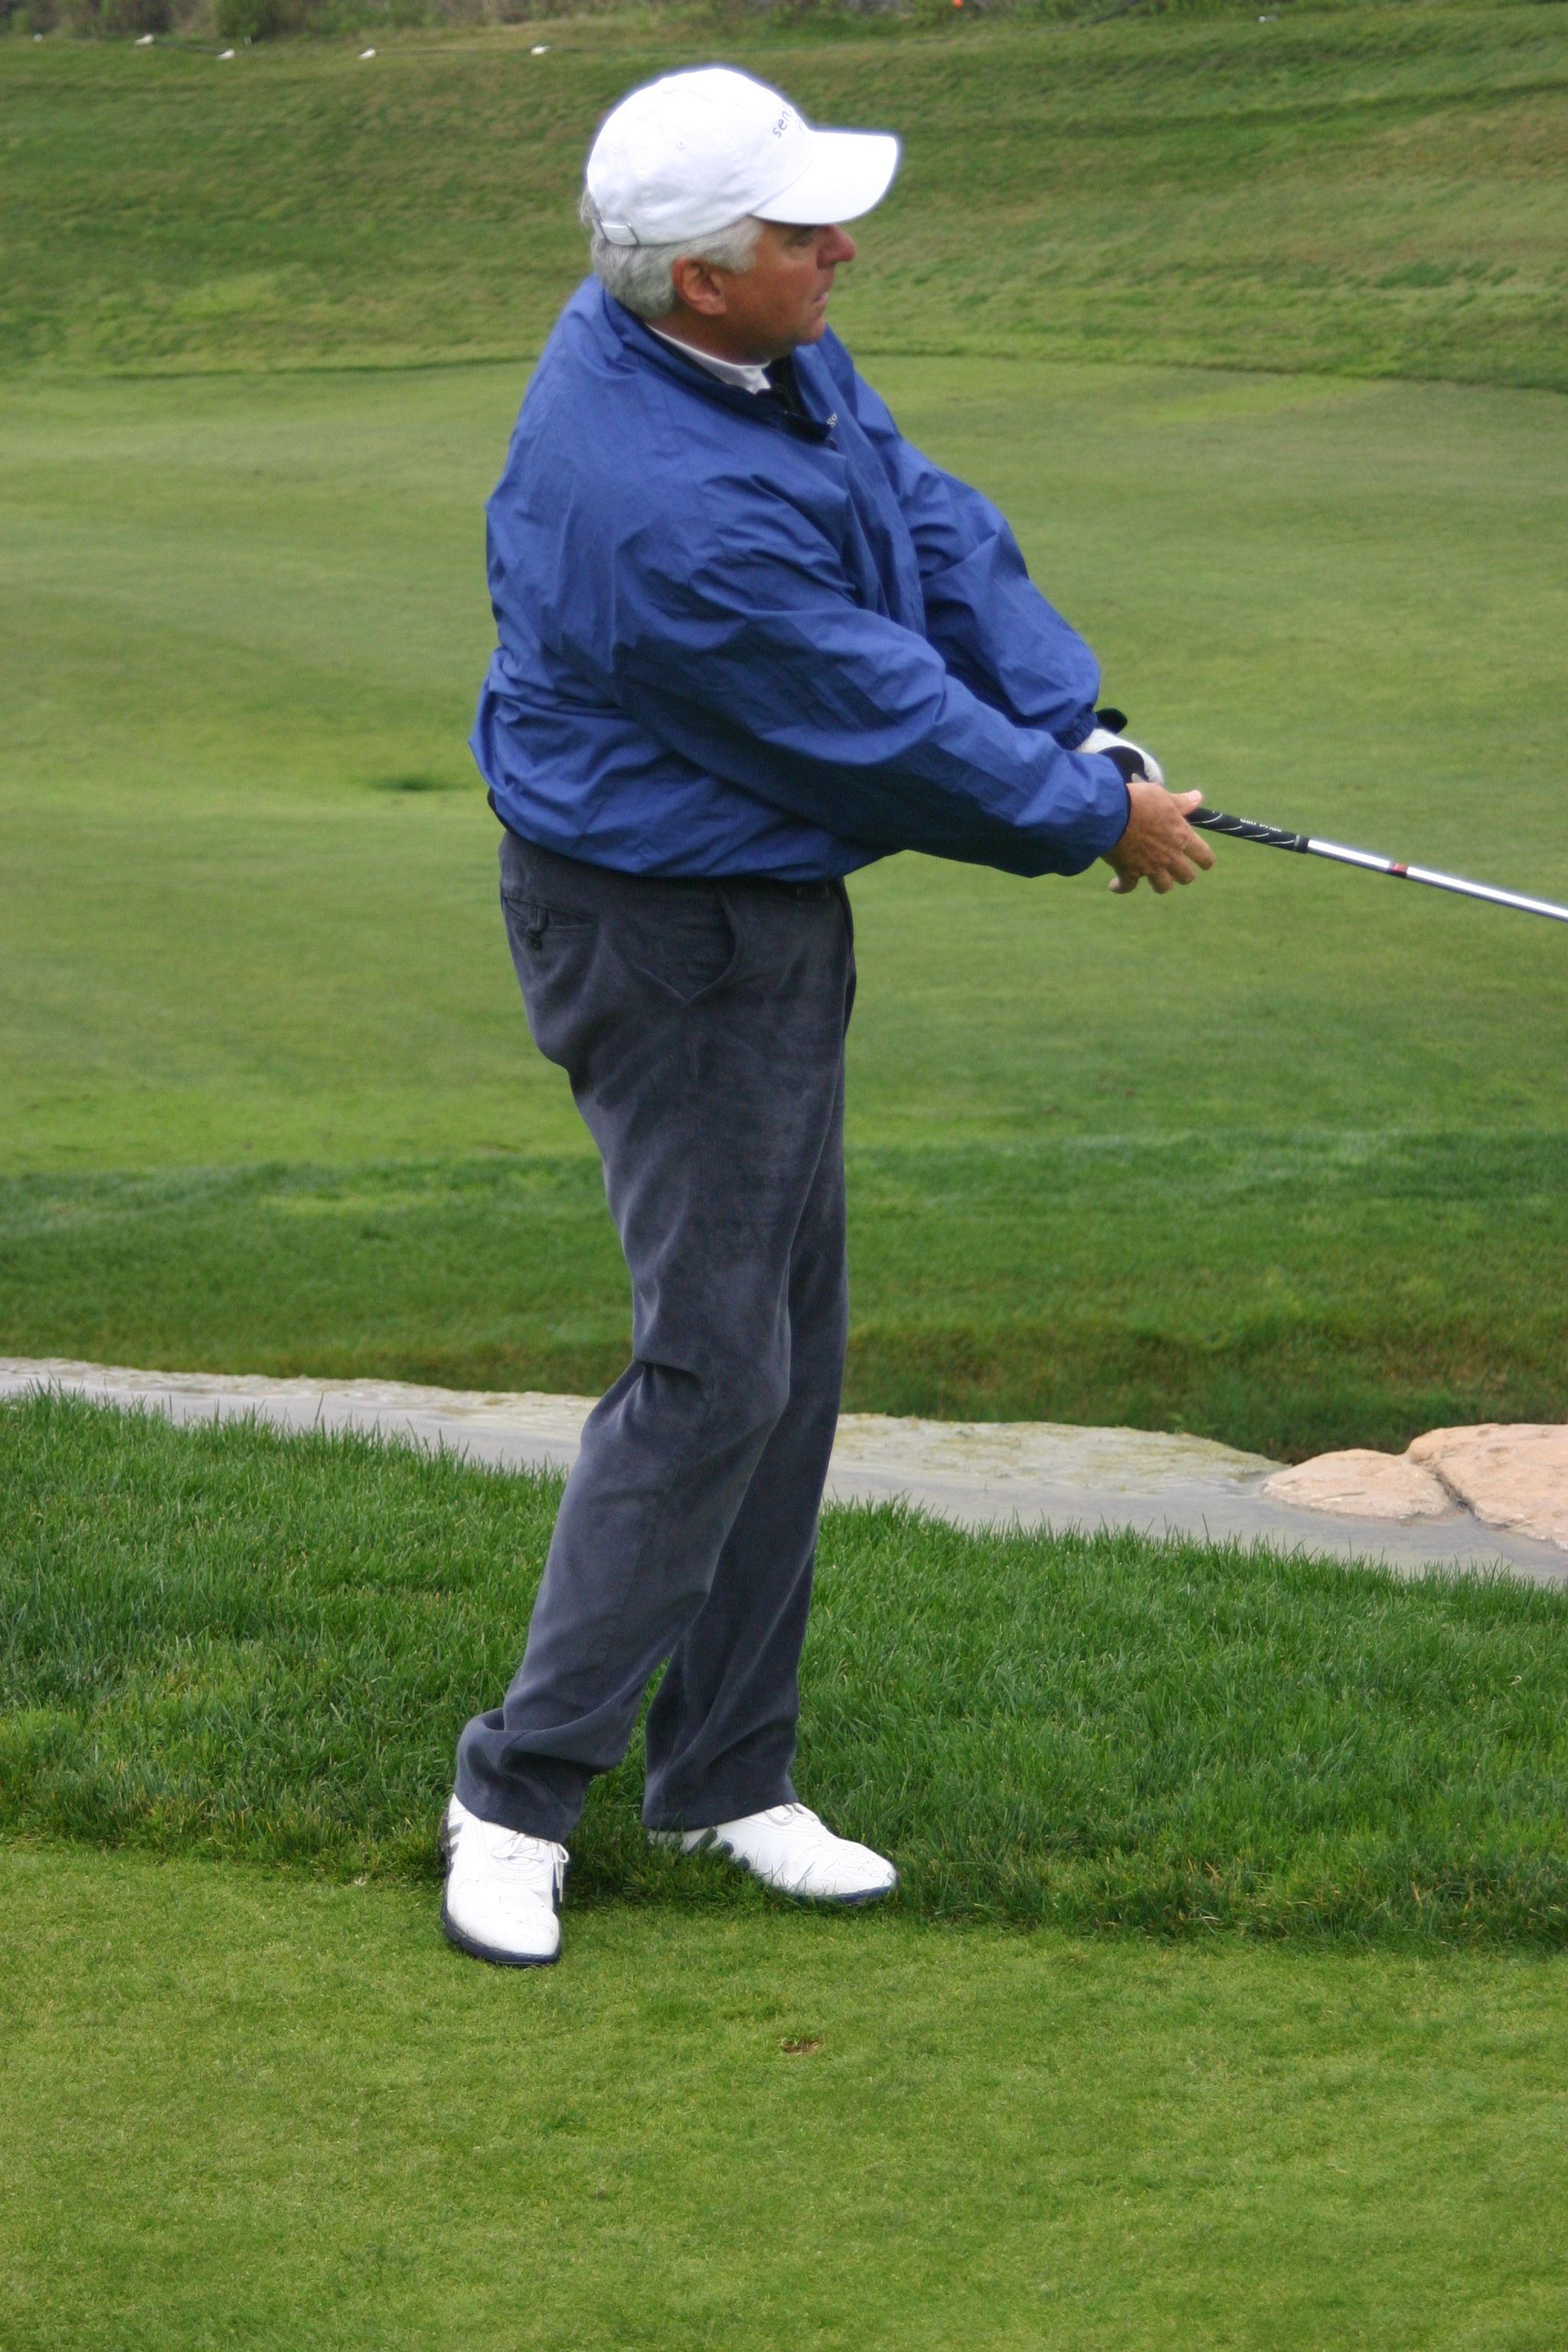 John O Hurley Hitting A Pitch Shot At The Tri Mark Golf Celebrity Challenge At Trump National Los Angeles John O Hurley Challenges Celebrities